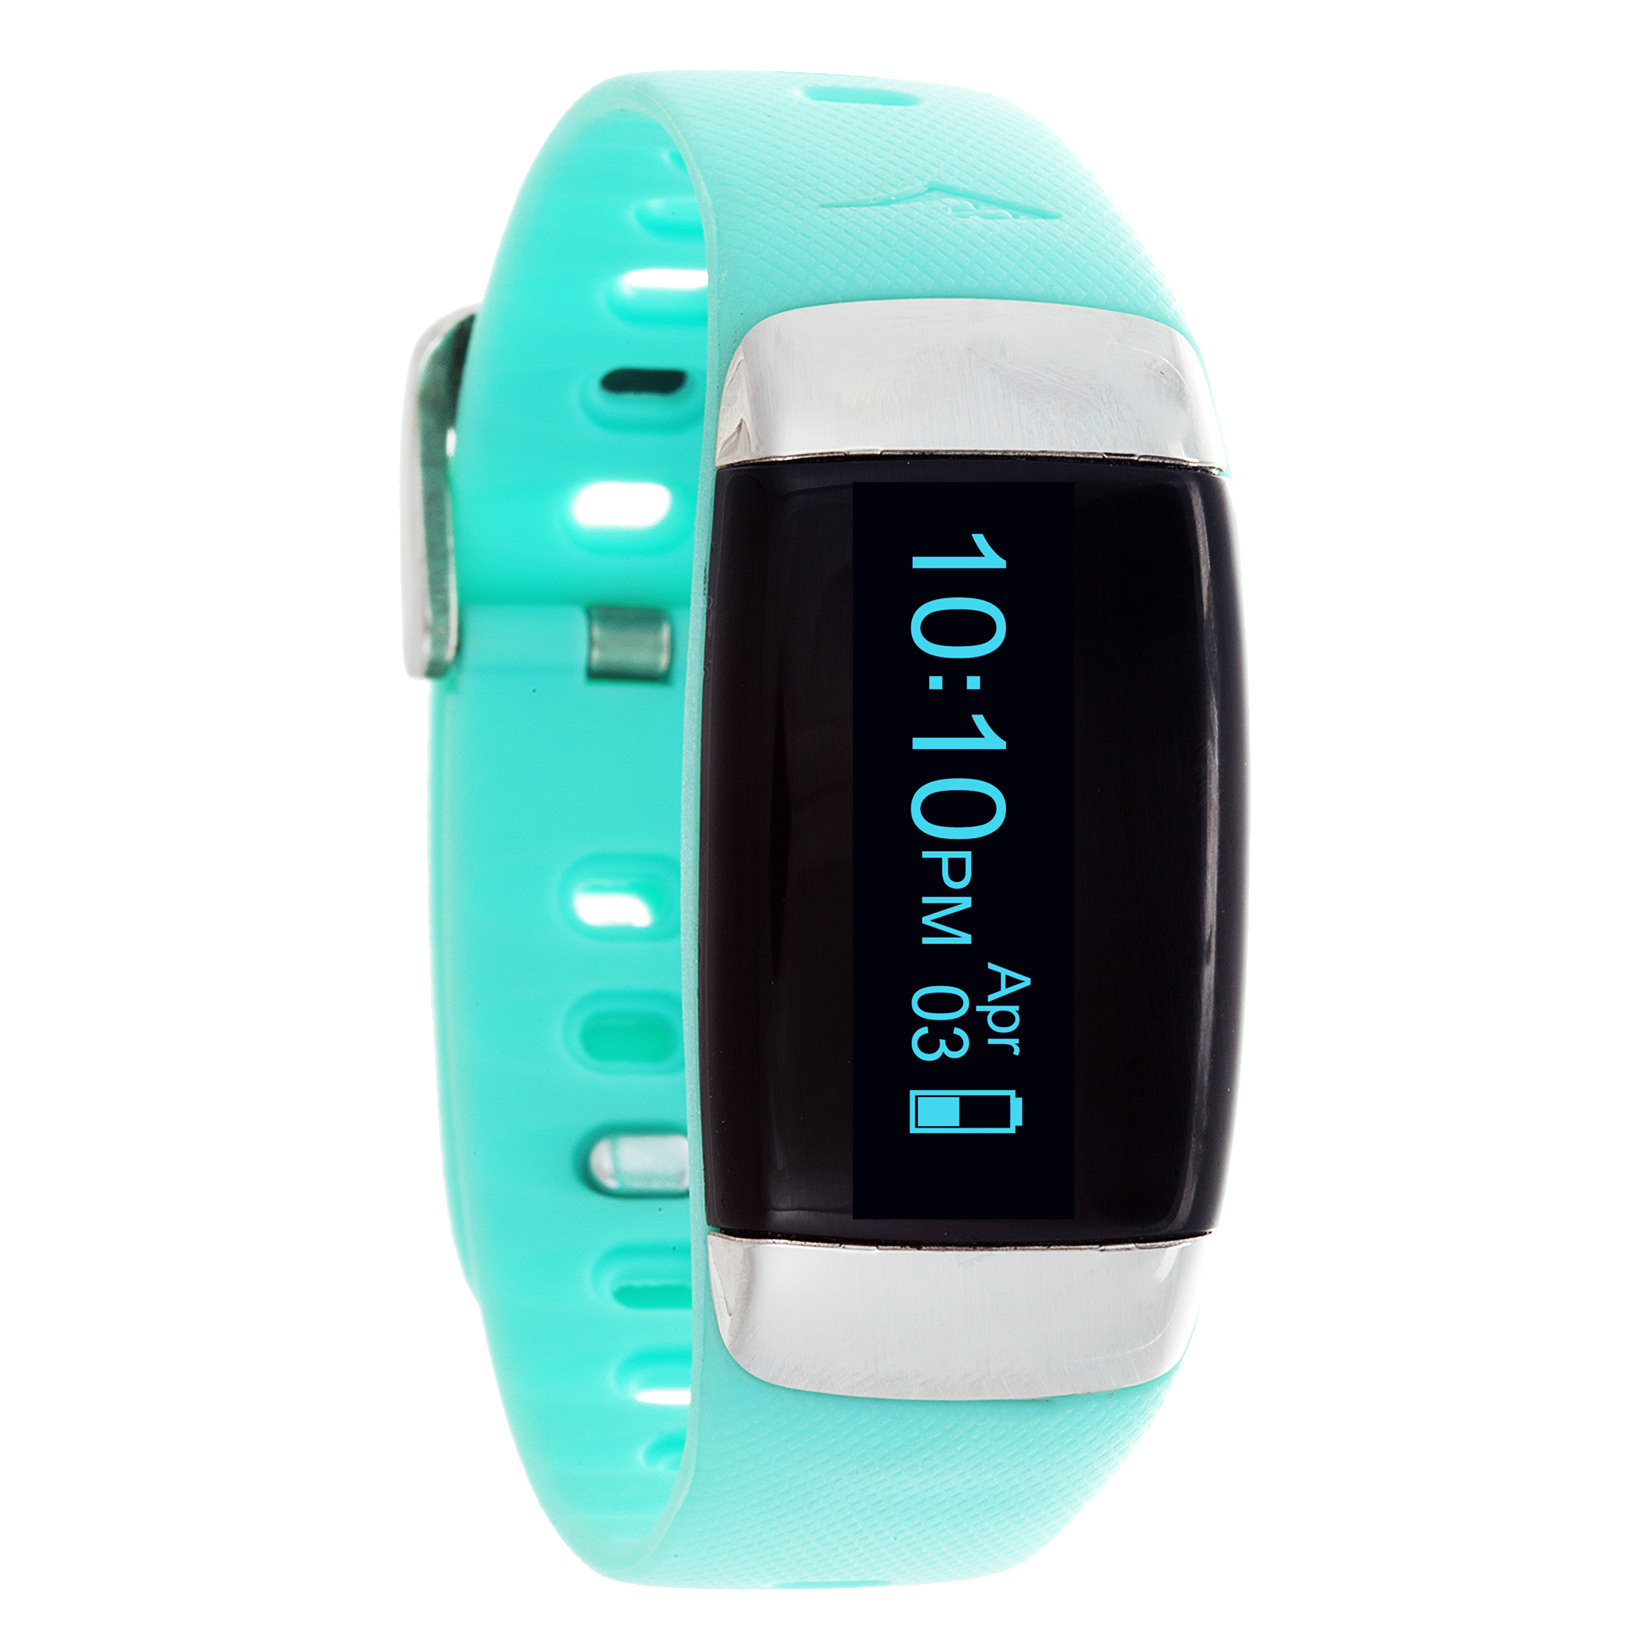 Everlast TR7 Activity Tracker and Heart Rate Monitor, Multiple Colors Available